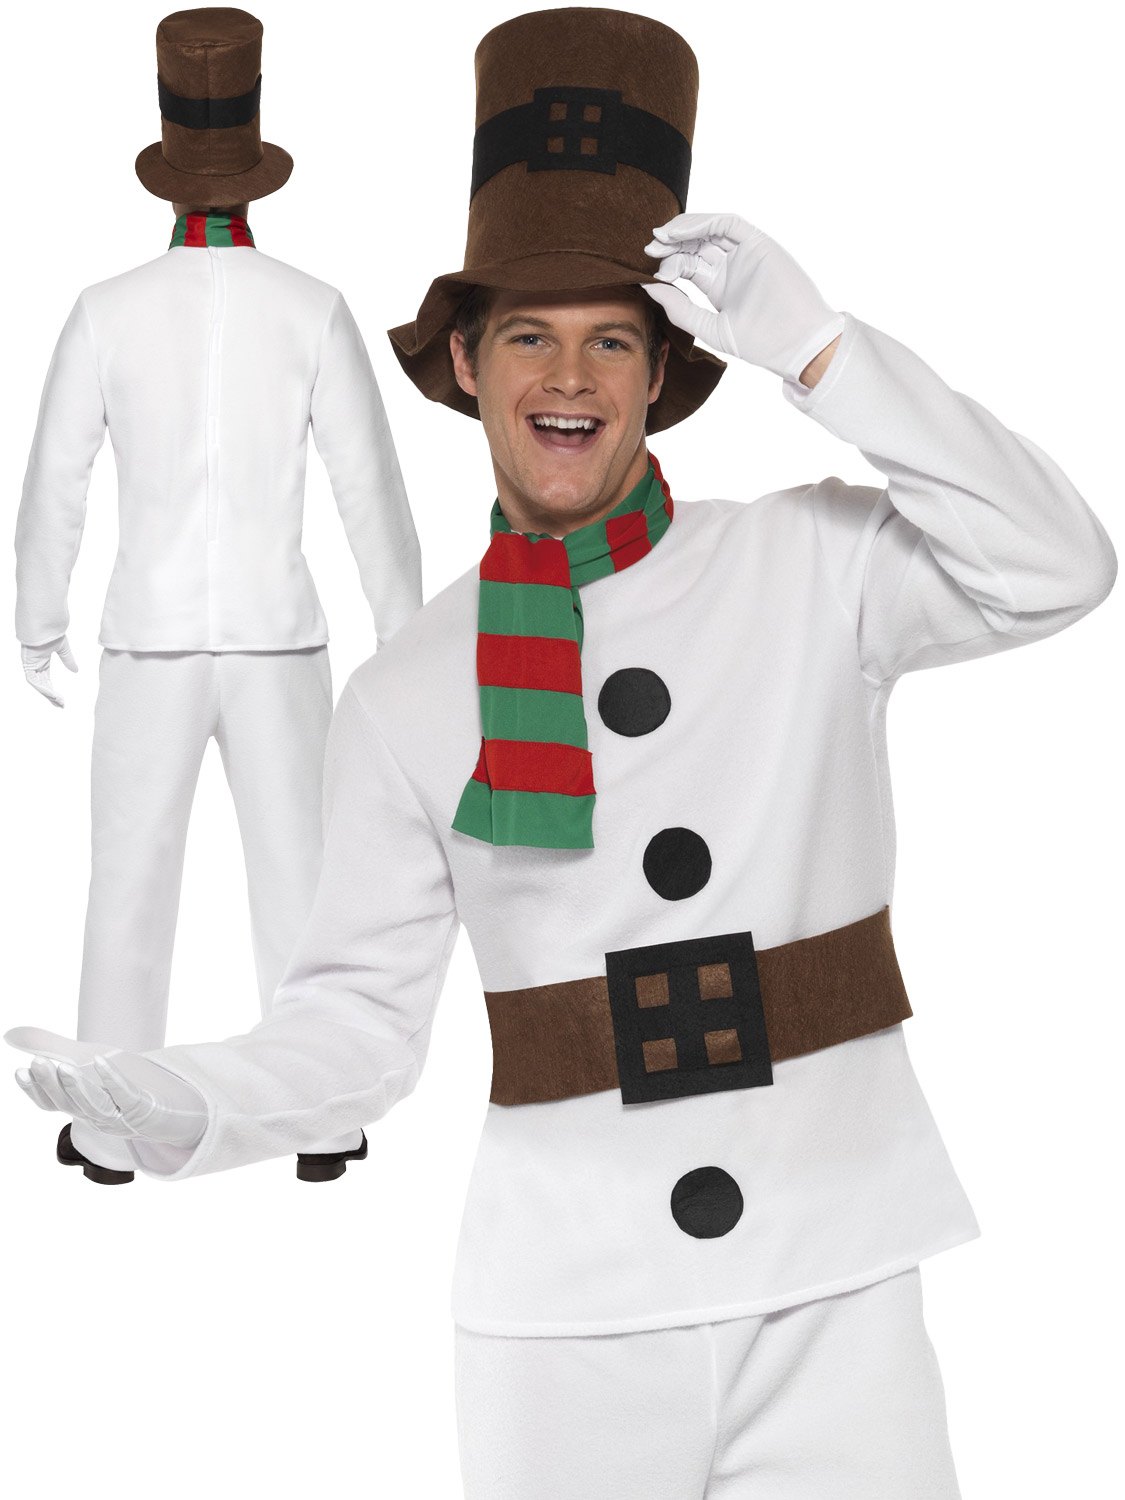 Mens mr snowman costume adults christmas fancy dress novelty xmas transform yourself into a snowman with this mens christmas costume ideal if you are dressing up for an xmas party solutioingenieria Gallery